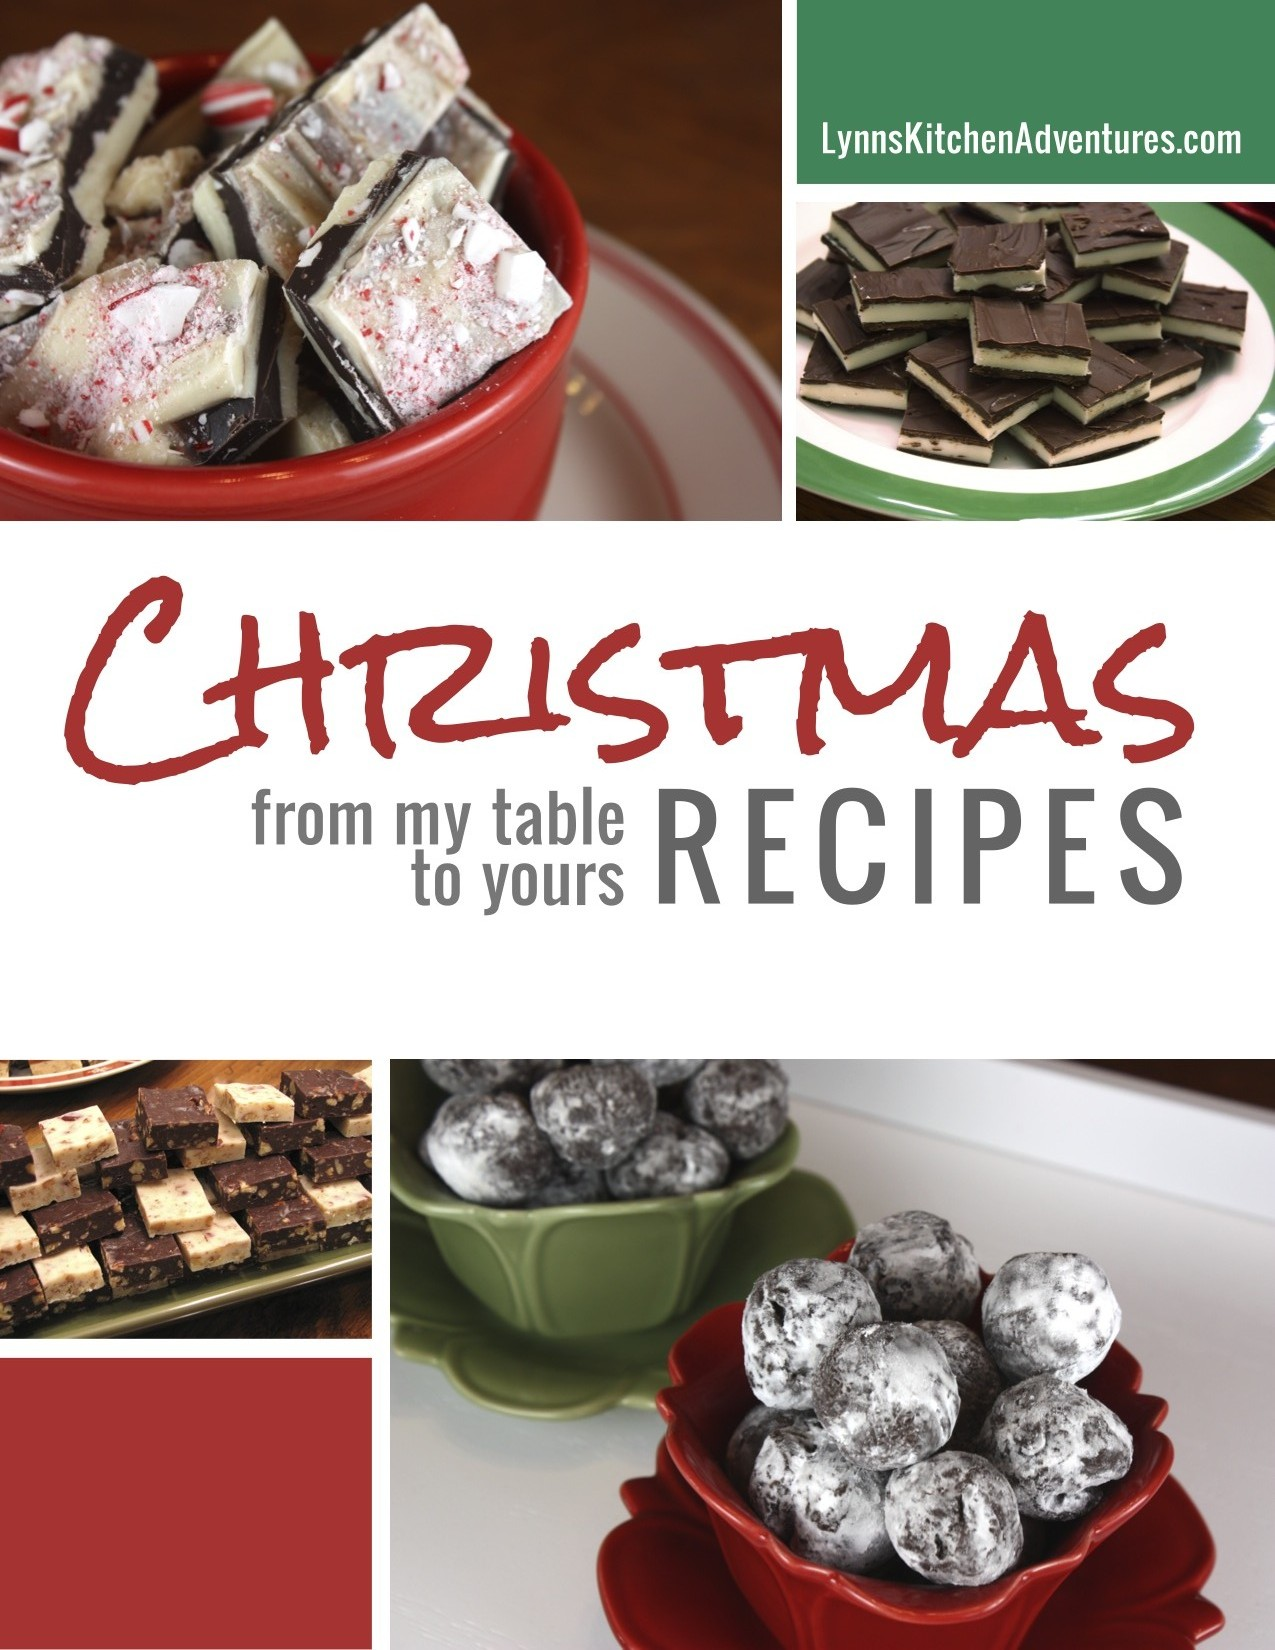 Christmas Recipes New Cover - Copy